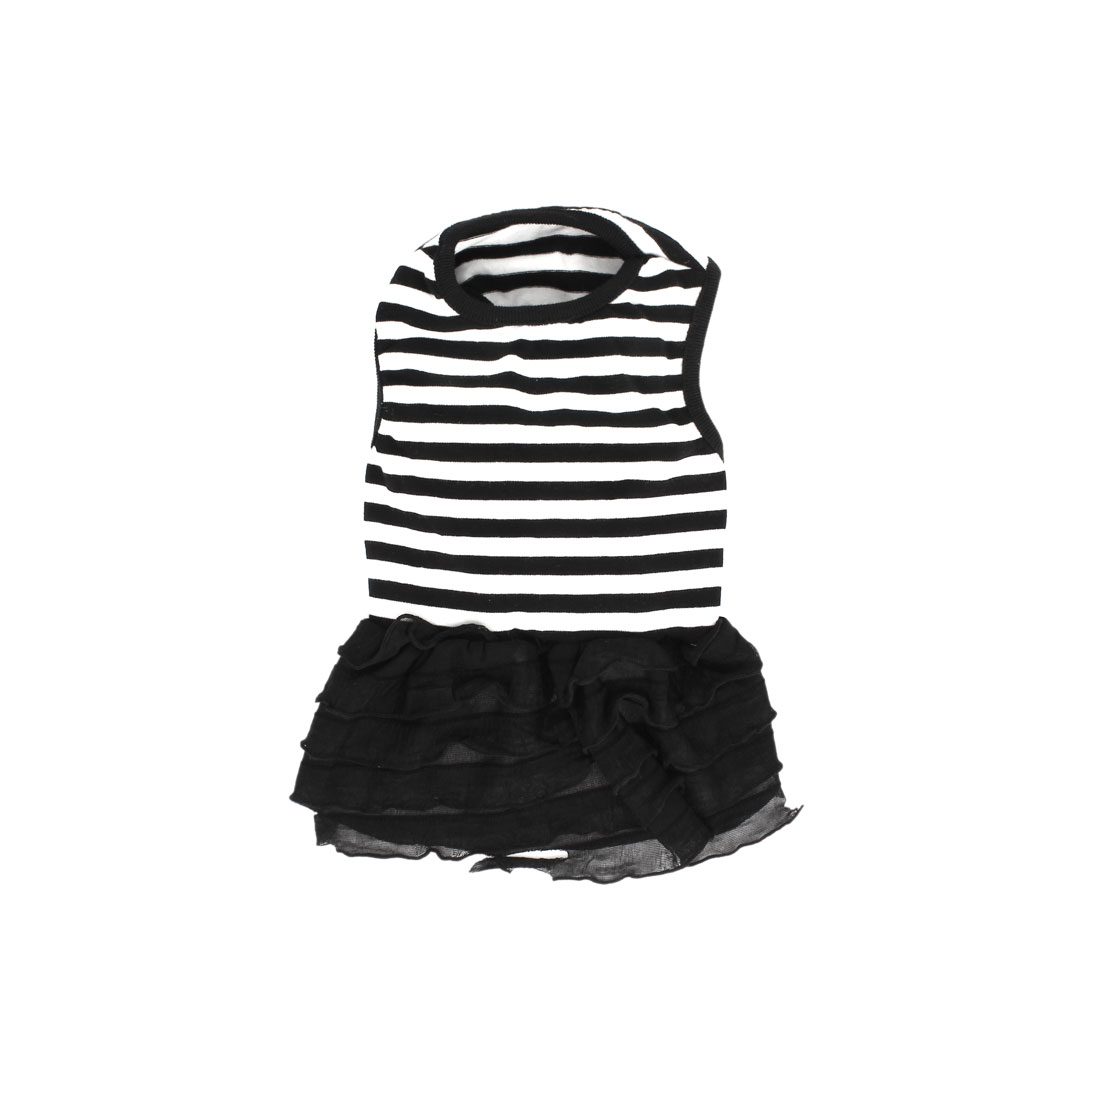 Black White Stripe Pattern Elastic Sleeveless Pet Dog Puppy Chiffon Dress Clothes Size XS